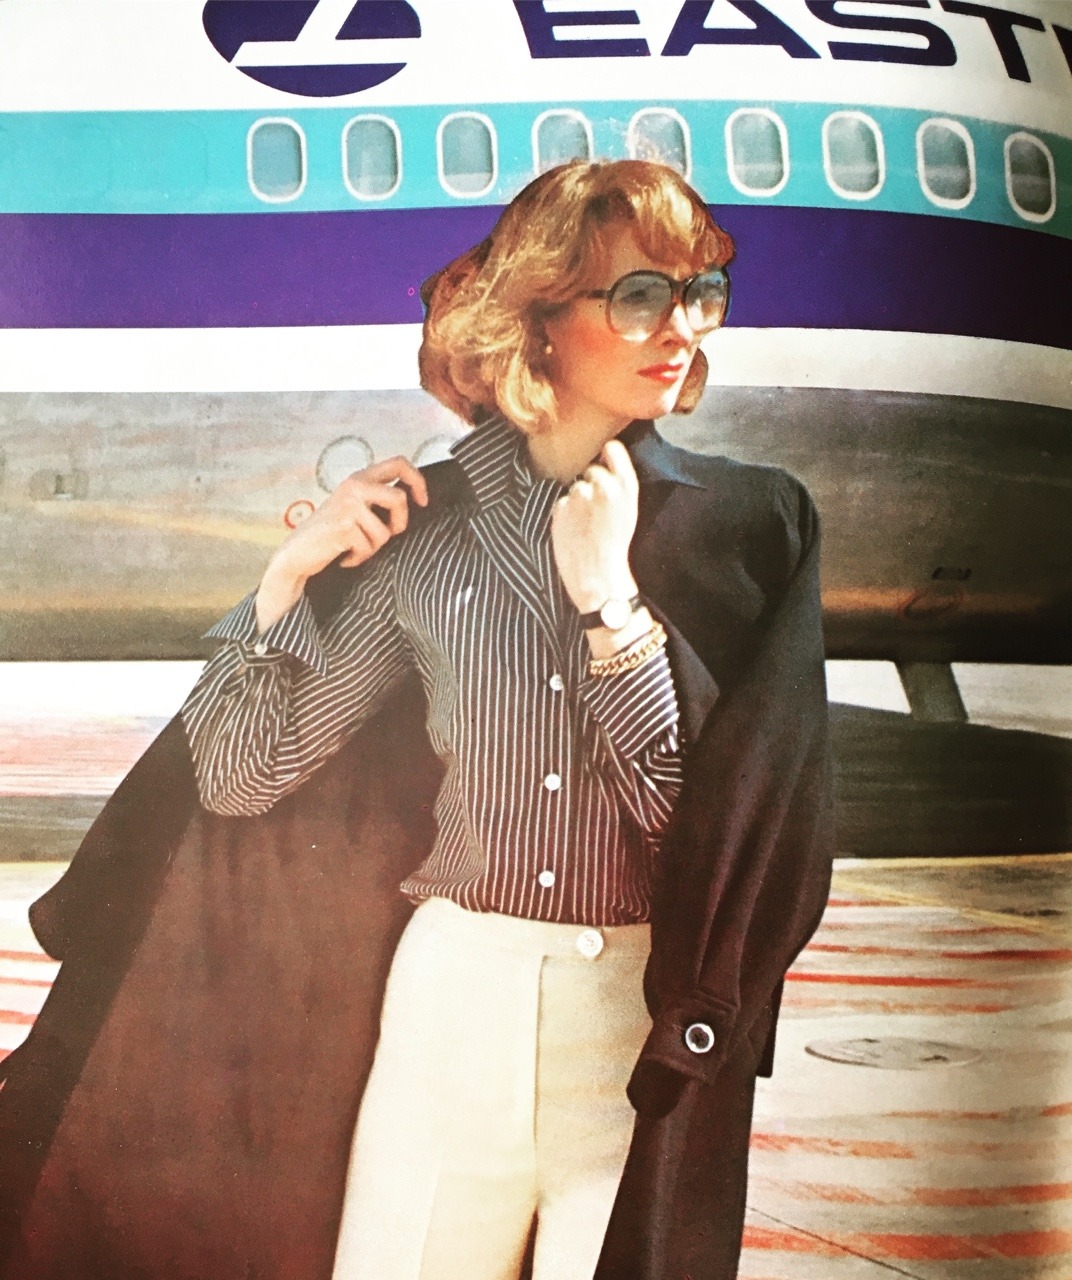 Eastern Airlines travel fashion advertorial. Vogue. May 1976.   You need to fly in style. Eastern Airlines was once one of the largest airlines, but in the late '70s it was going through quite a bit of financial turmoil which spiraled them into bankruptcy before ceasing operations in 1991. In 2015, a new group of airline industry managers relaunched Eastern Airlines, hoping to preserve the legacy. Currently, the revived airline flies between Miami and Cuba and other Caribbean destinations.